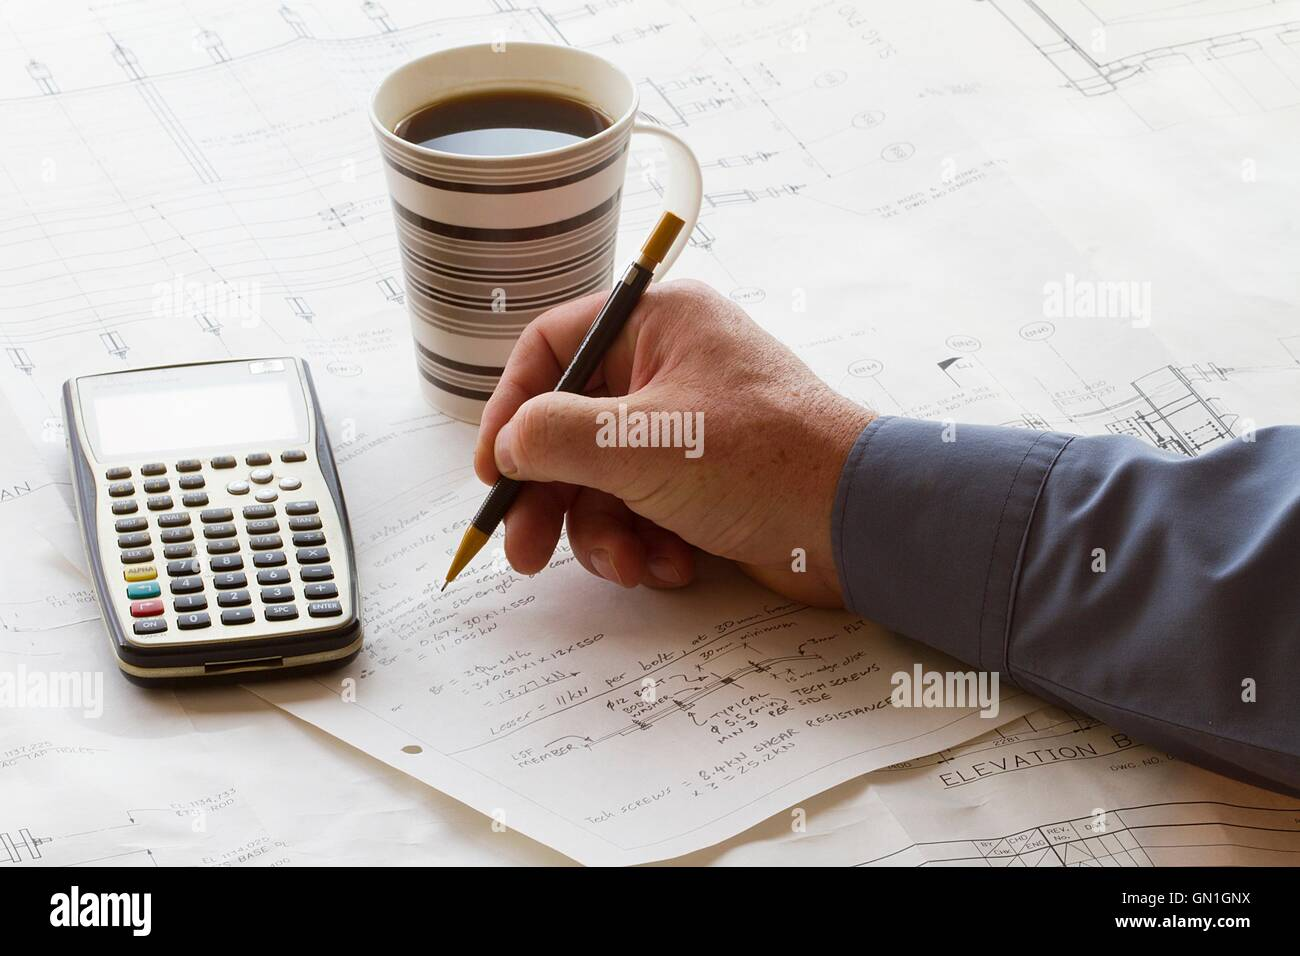 Engineer doing hand calculations on a calculation sheet, with a calculator and cup of coffee - Stock Image